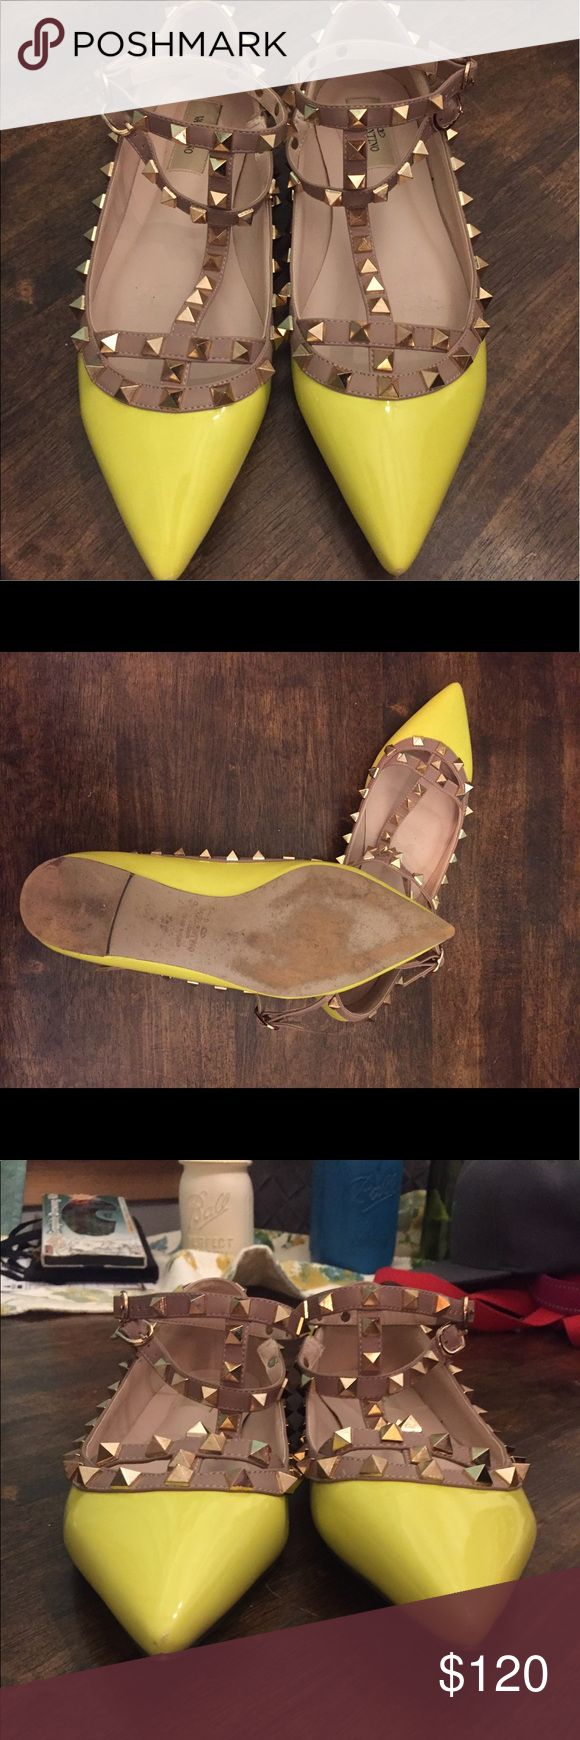 Rockstud Bright Yellow Flats Bright yellow sexy rockstud flats. Only worn once, but love them! Just don't wear this color much anymore. Perfect condition except for tiny scuff on the tips of the pointed toes. Comes with box. Price reflects, but really good quality! Valentino Shoes Flats & Loafers